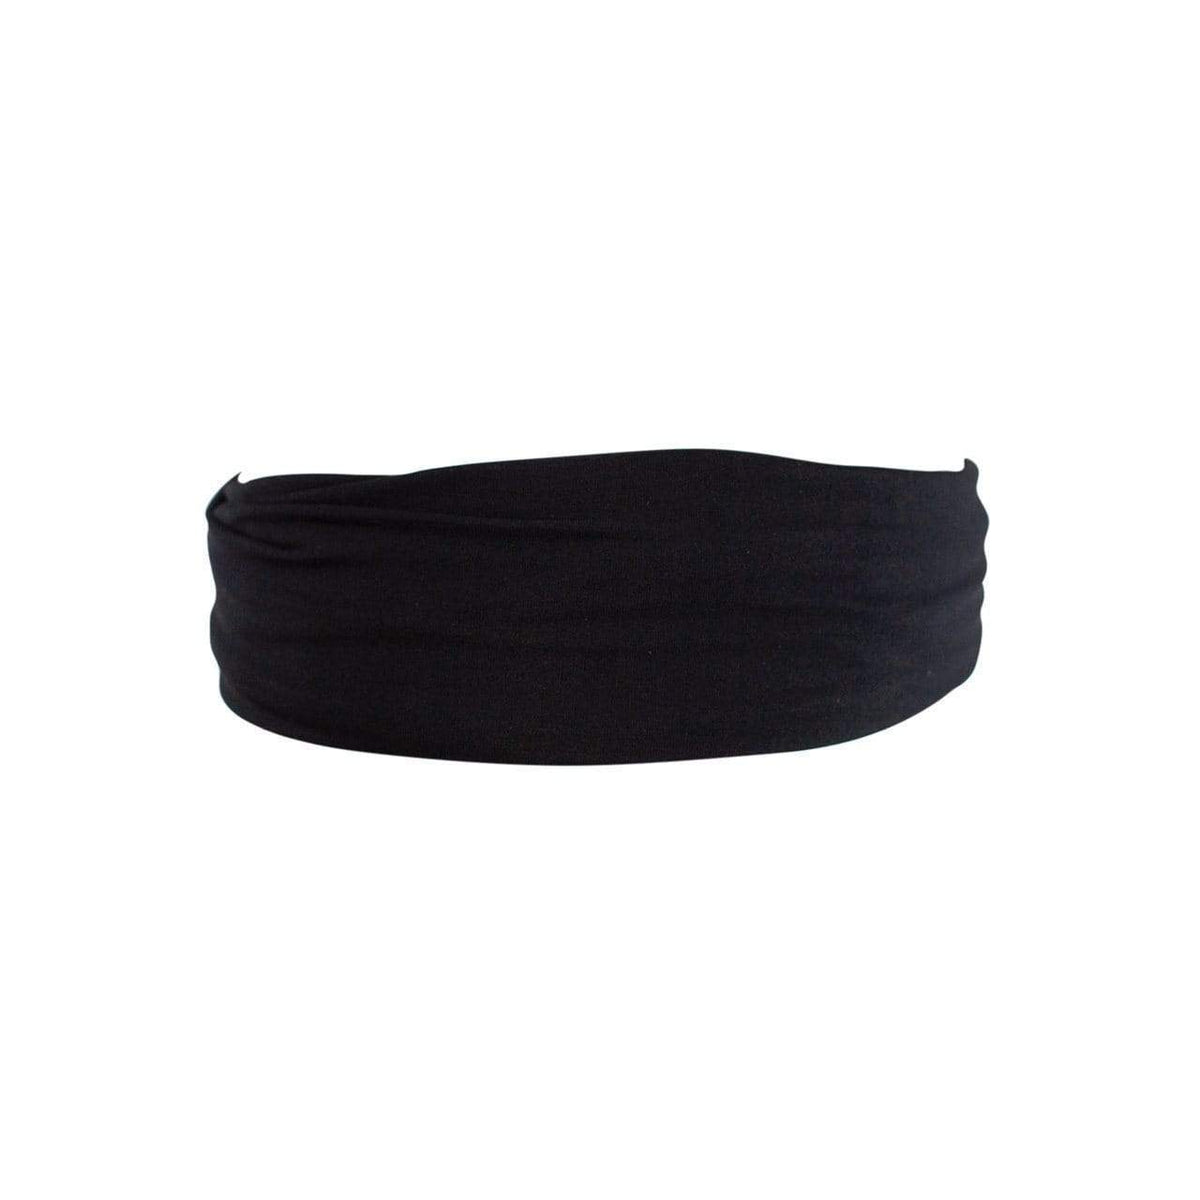 Silky Stretch Headband - Black - KITSCH